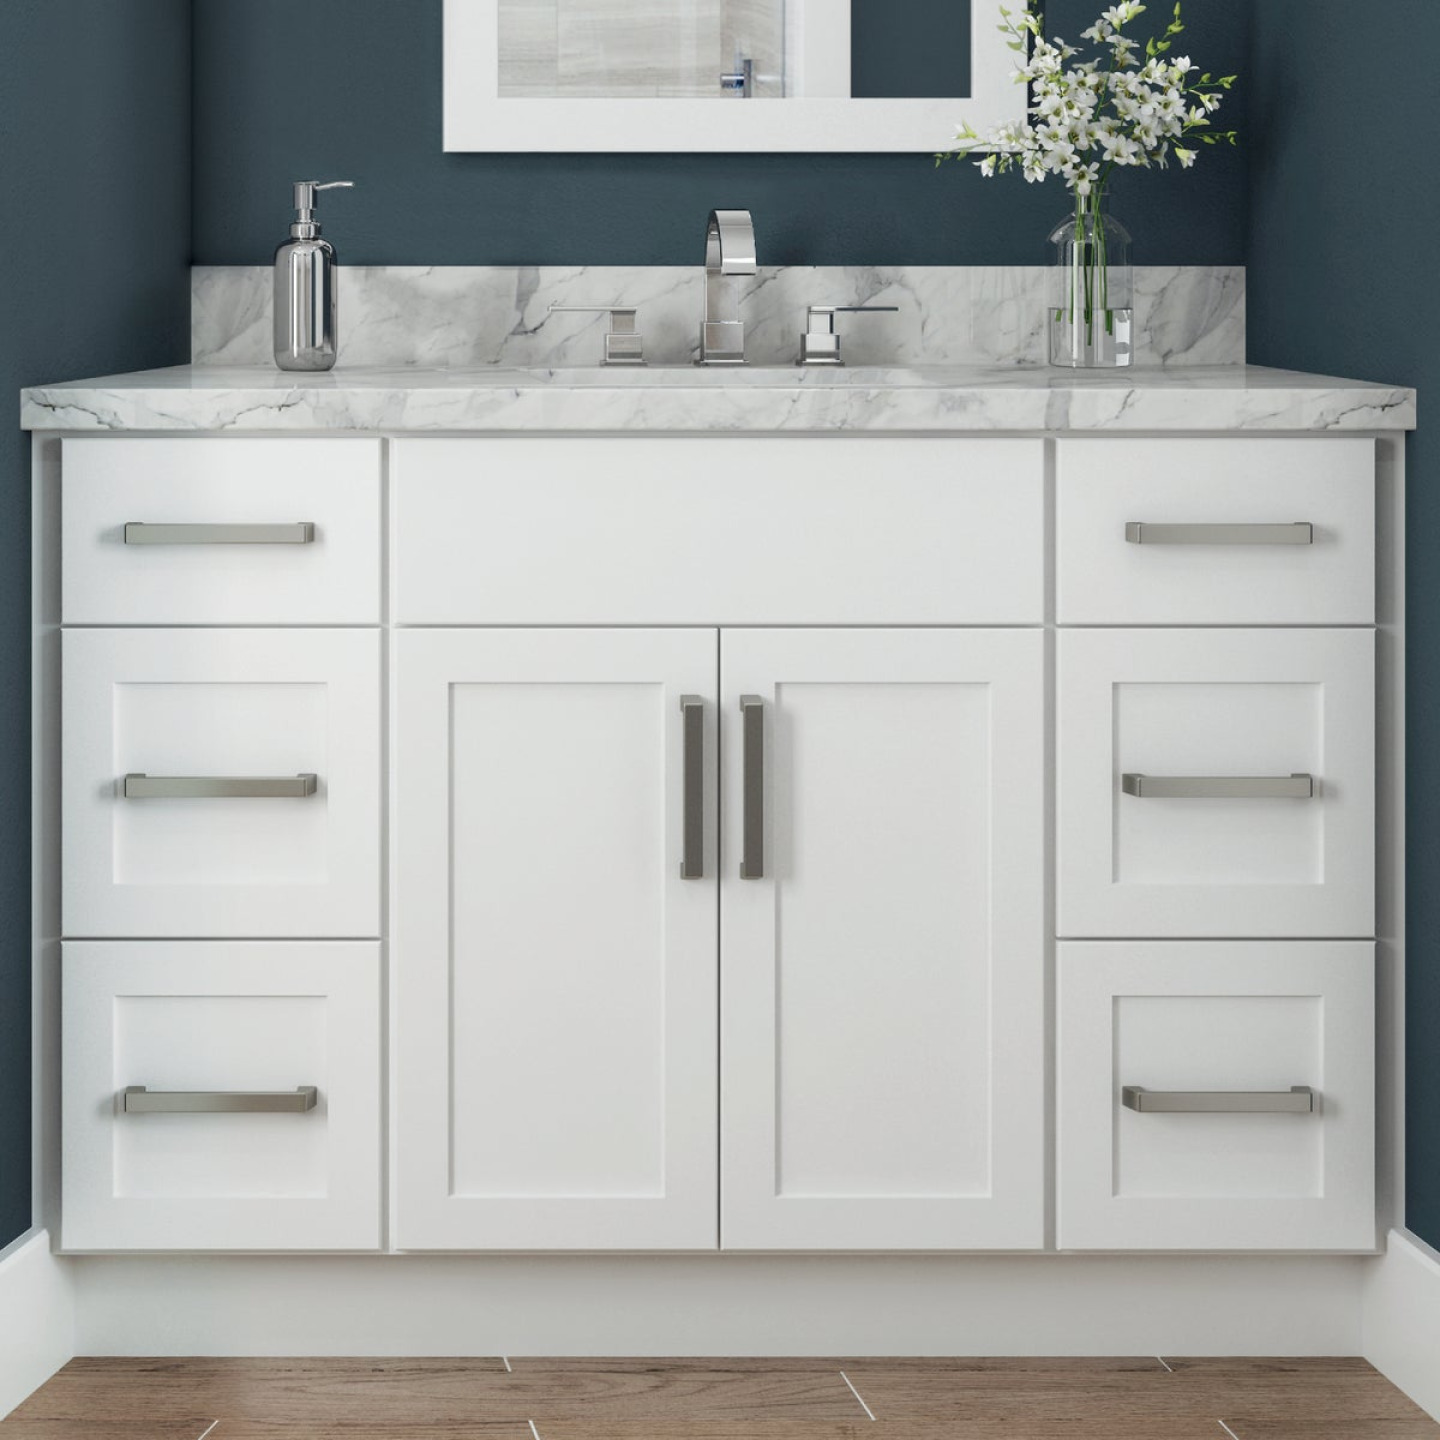 Continental Cabinets Andover Shaker 12 In. W x 34-1/2 In. H x 21 In. D White Drawer Vanity Base Image 2